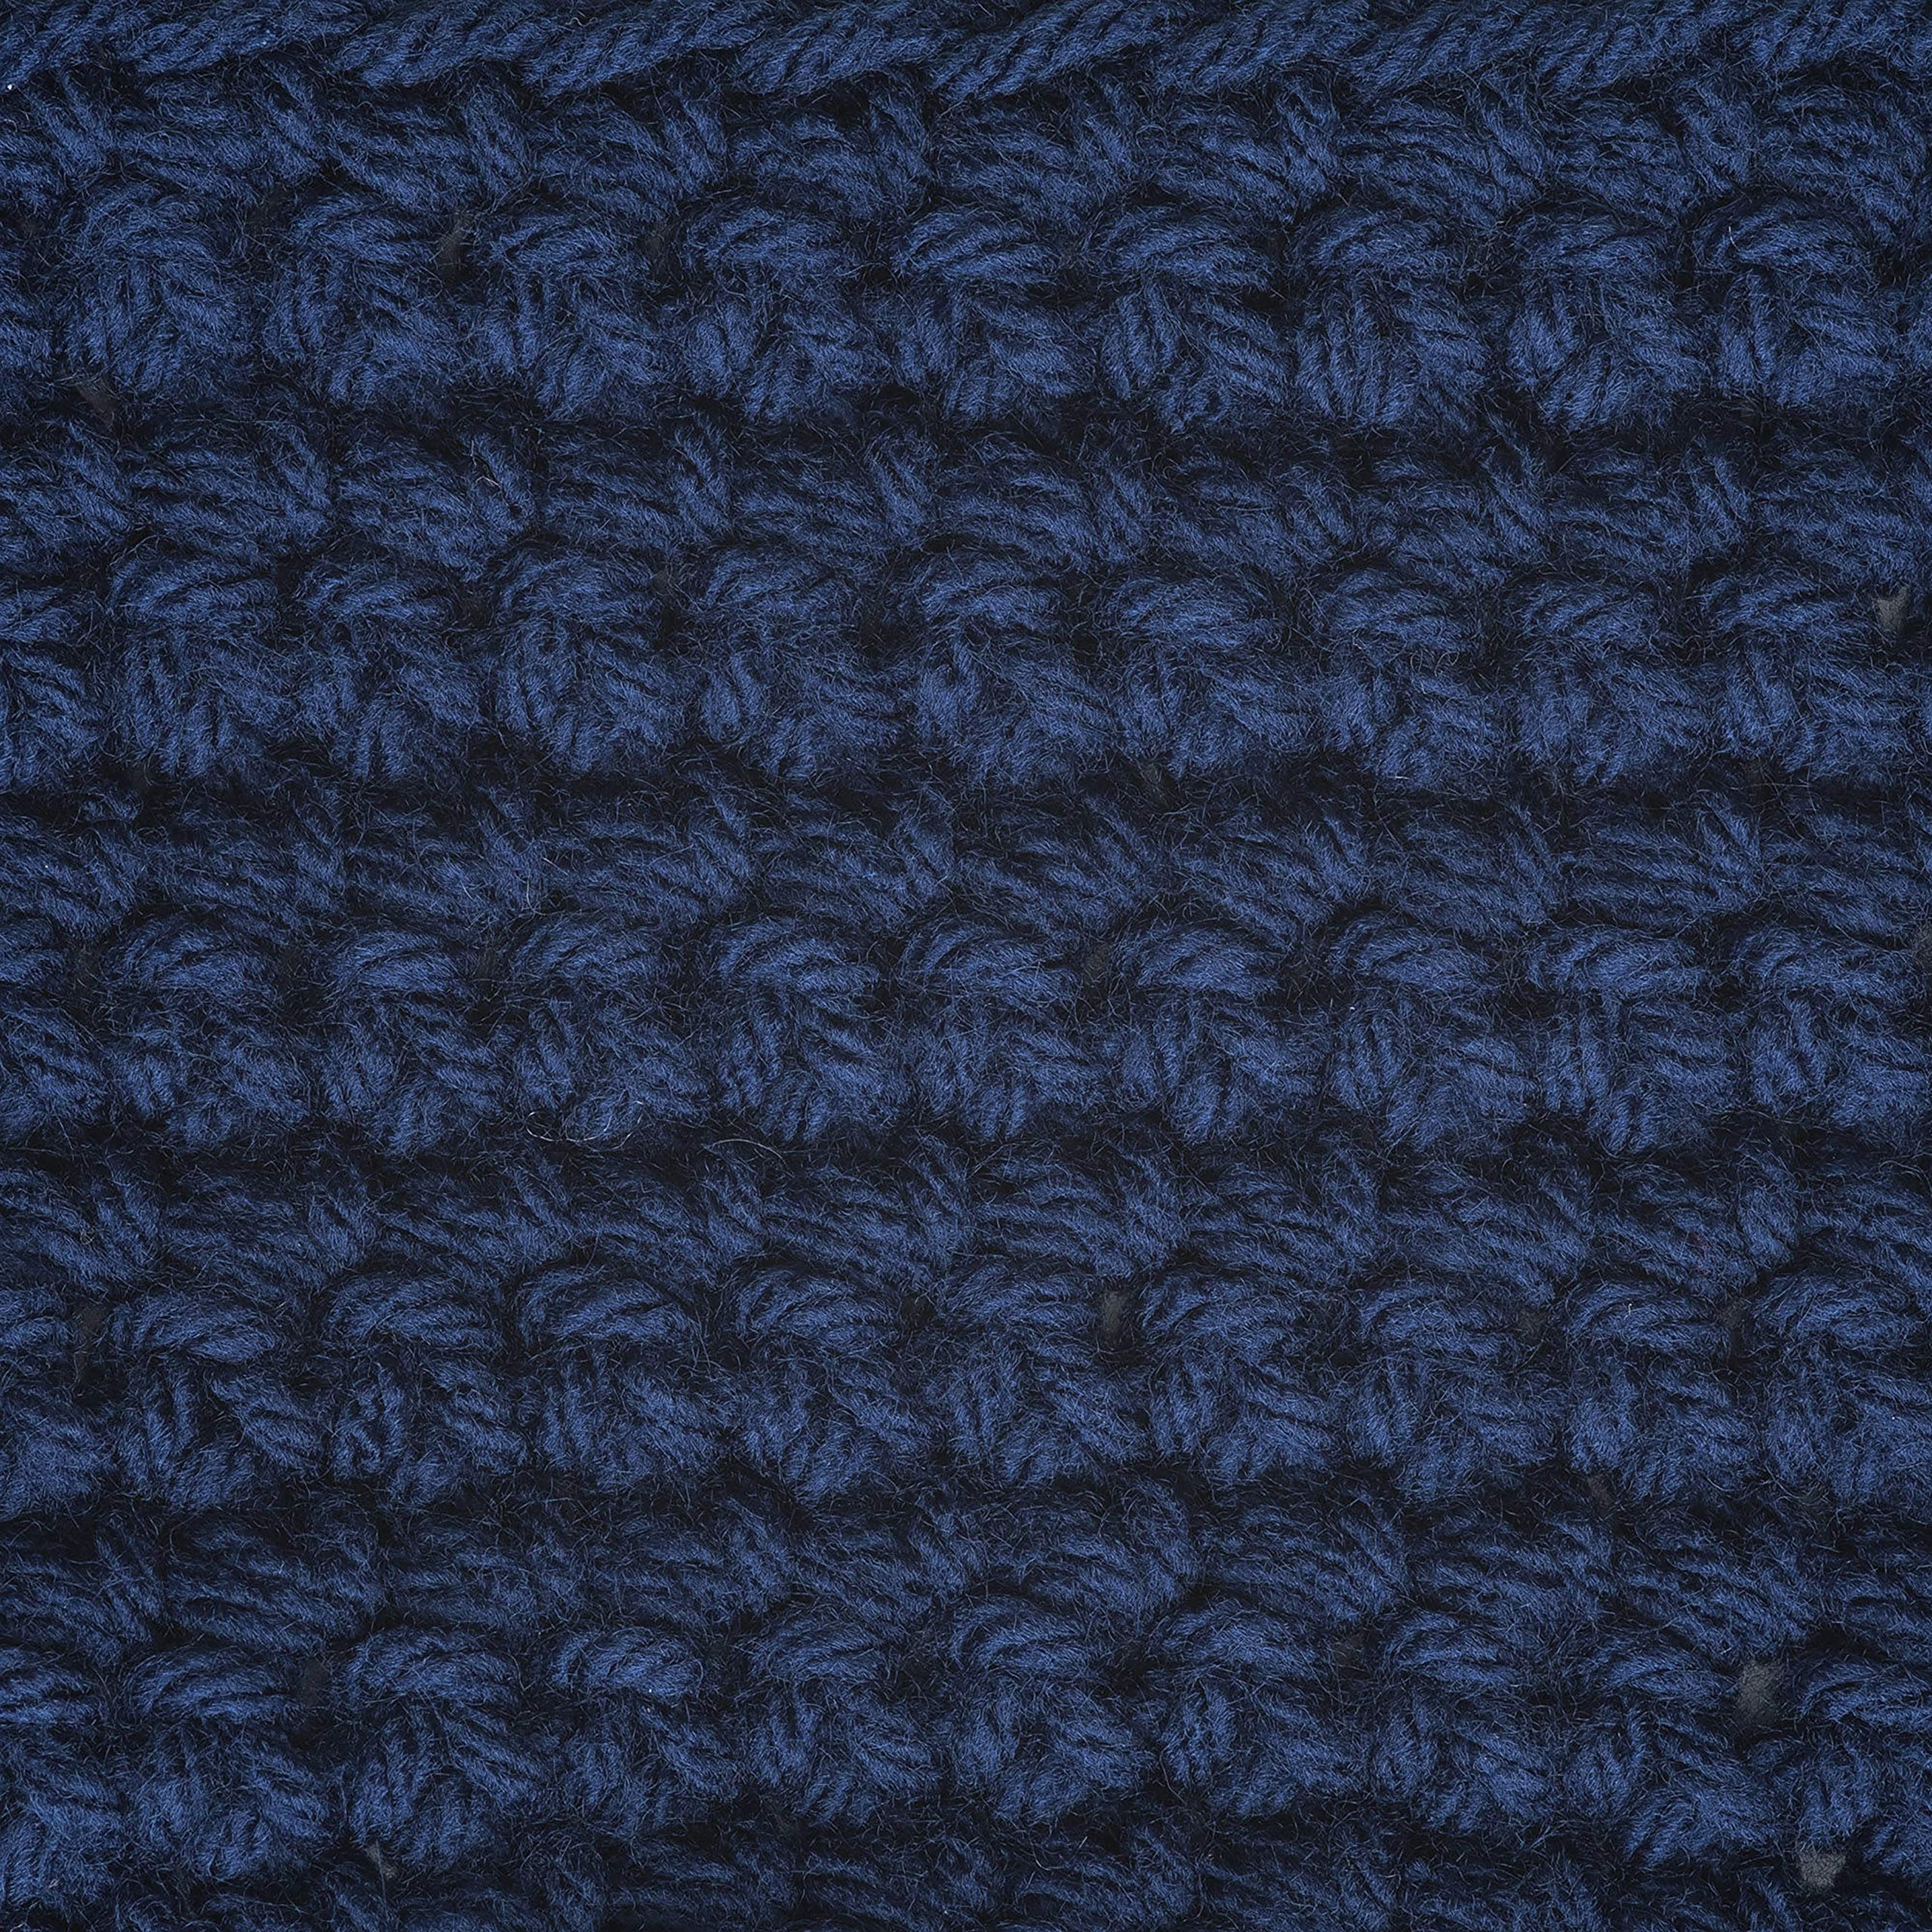 Caron 99583 One Pound Yarn-Midnight Blue, Multipack of 12, Pack by Caron (Image #3)